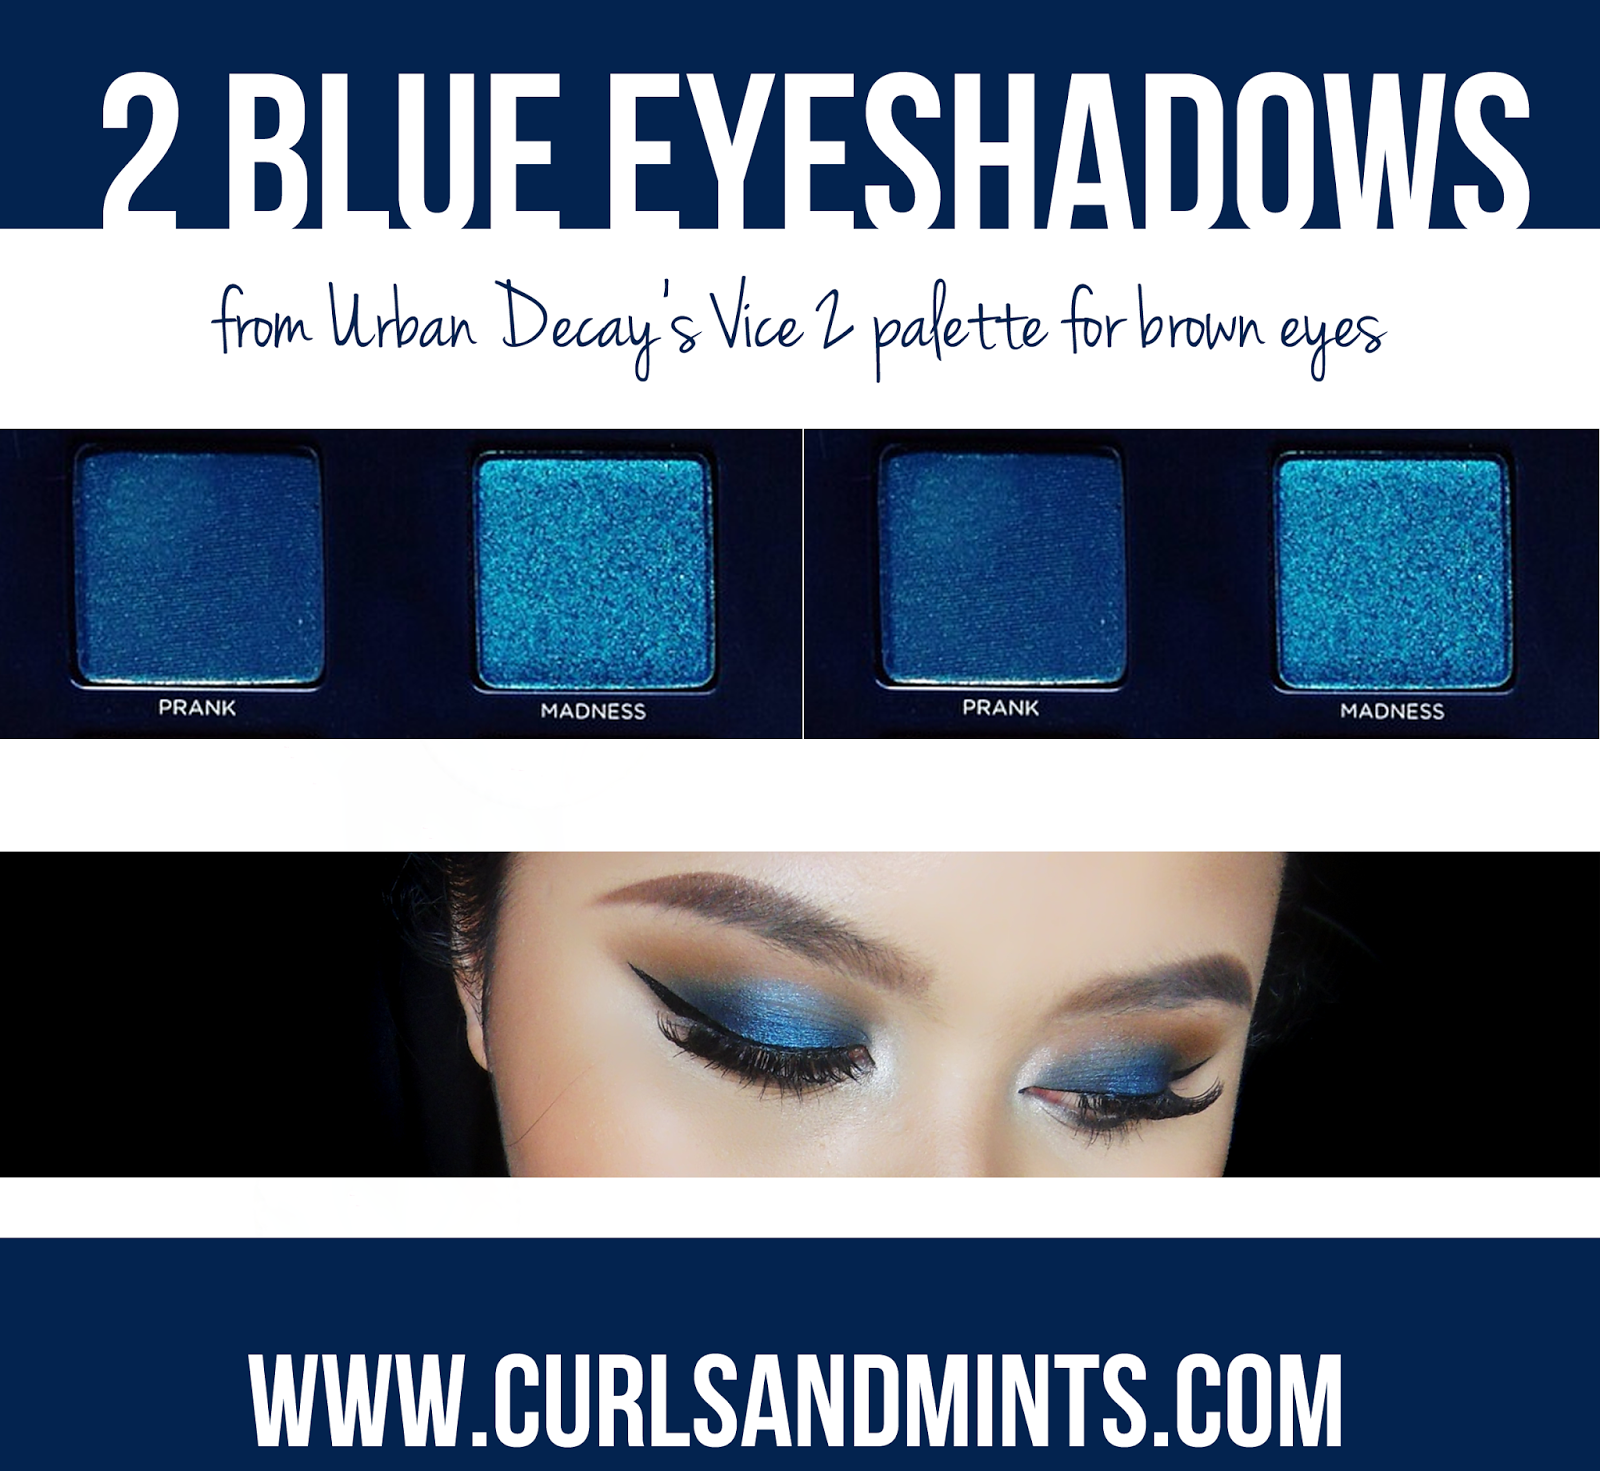 This image shows 2 blue eyeshadows that complements brown eyes.